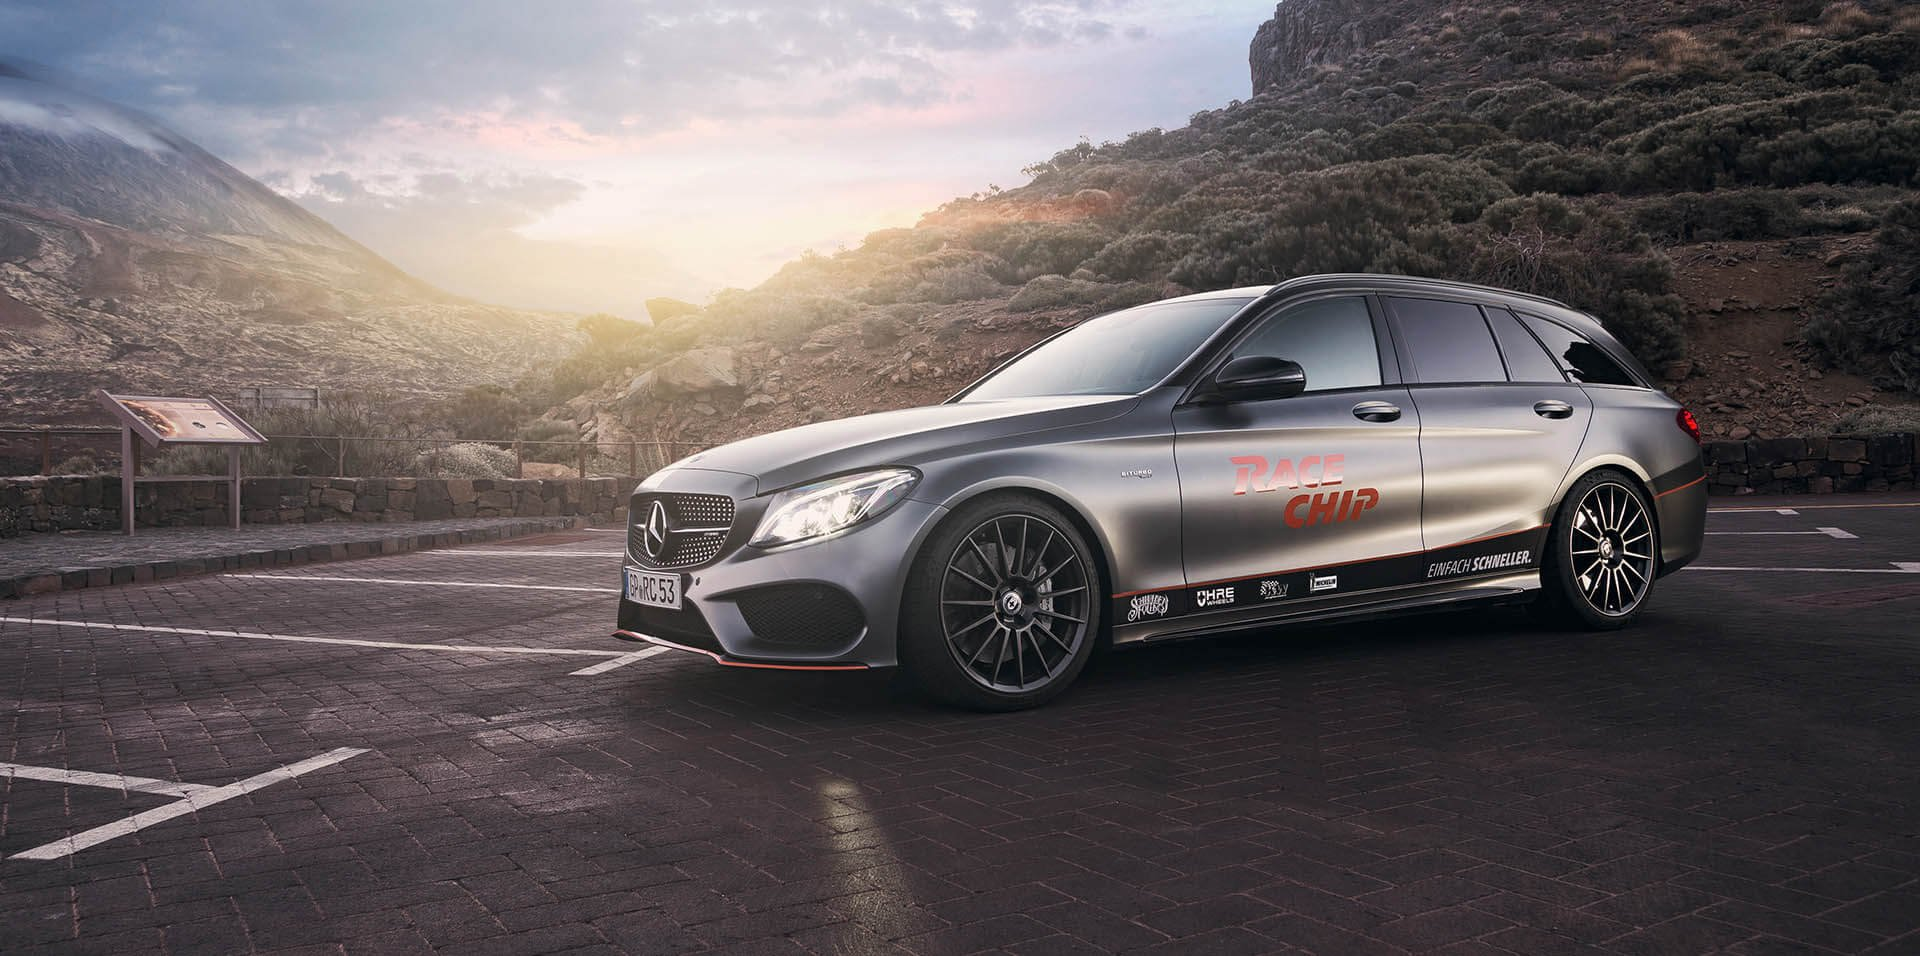 Mercedes-AMG C43 tuning by RaceChip | Mercedes-Benz Forum